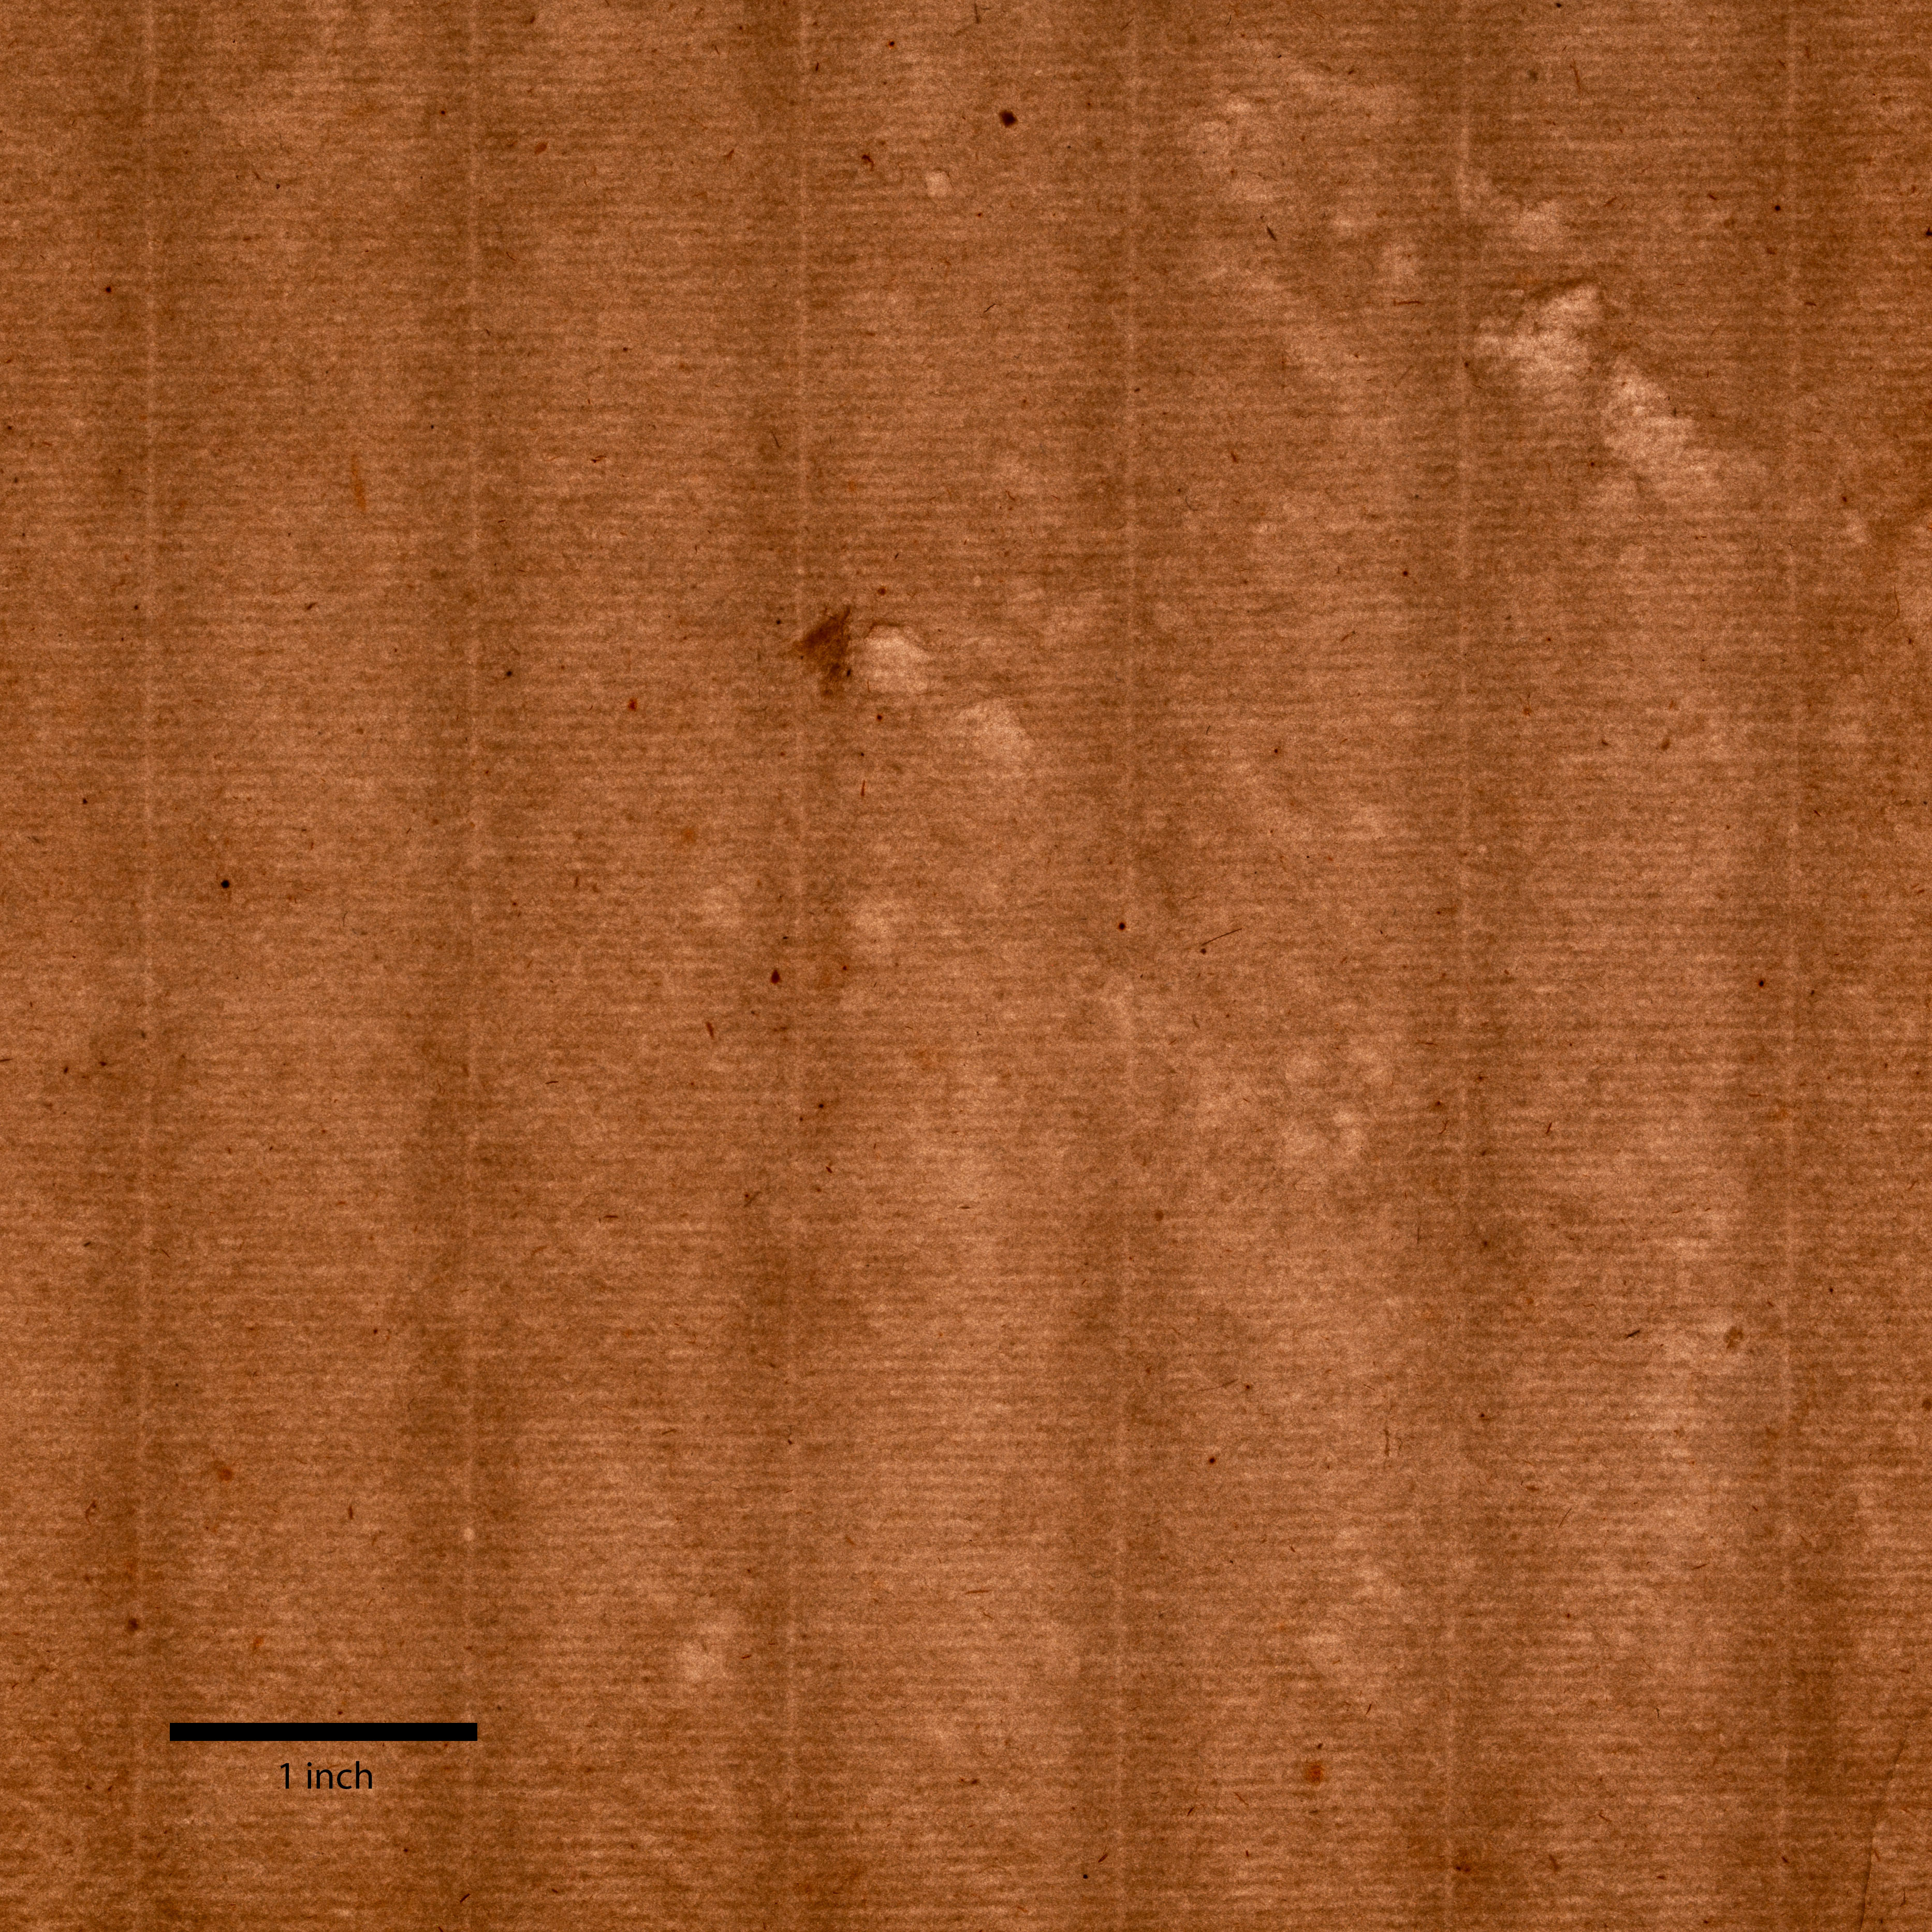 A brown sheet of paper is structured with a regular grid. Toward its right edge multiple lighter spots form an irregular pattern. A thick black line marks one inch at bottom left.